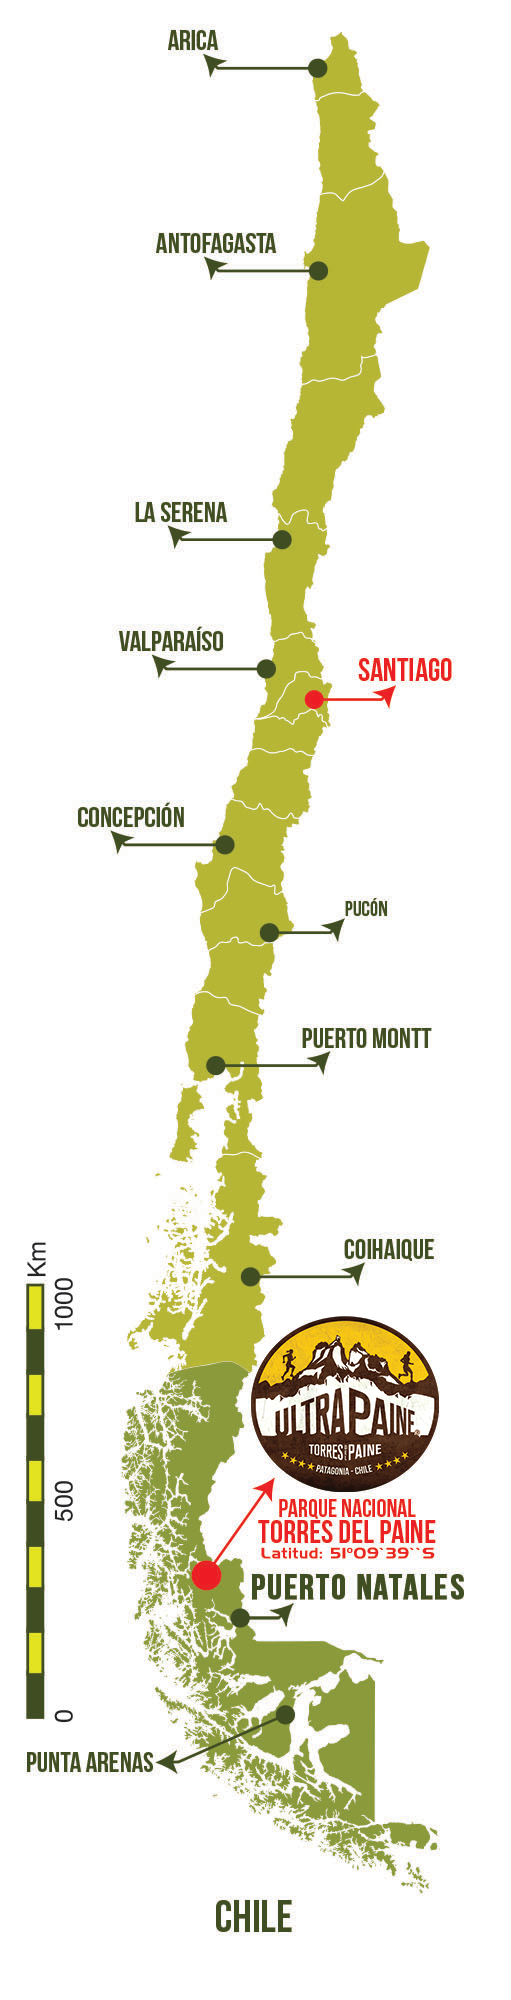 Ultra Paine General Map of Chile 2021 Patagonia, Chile